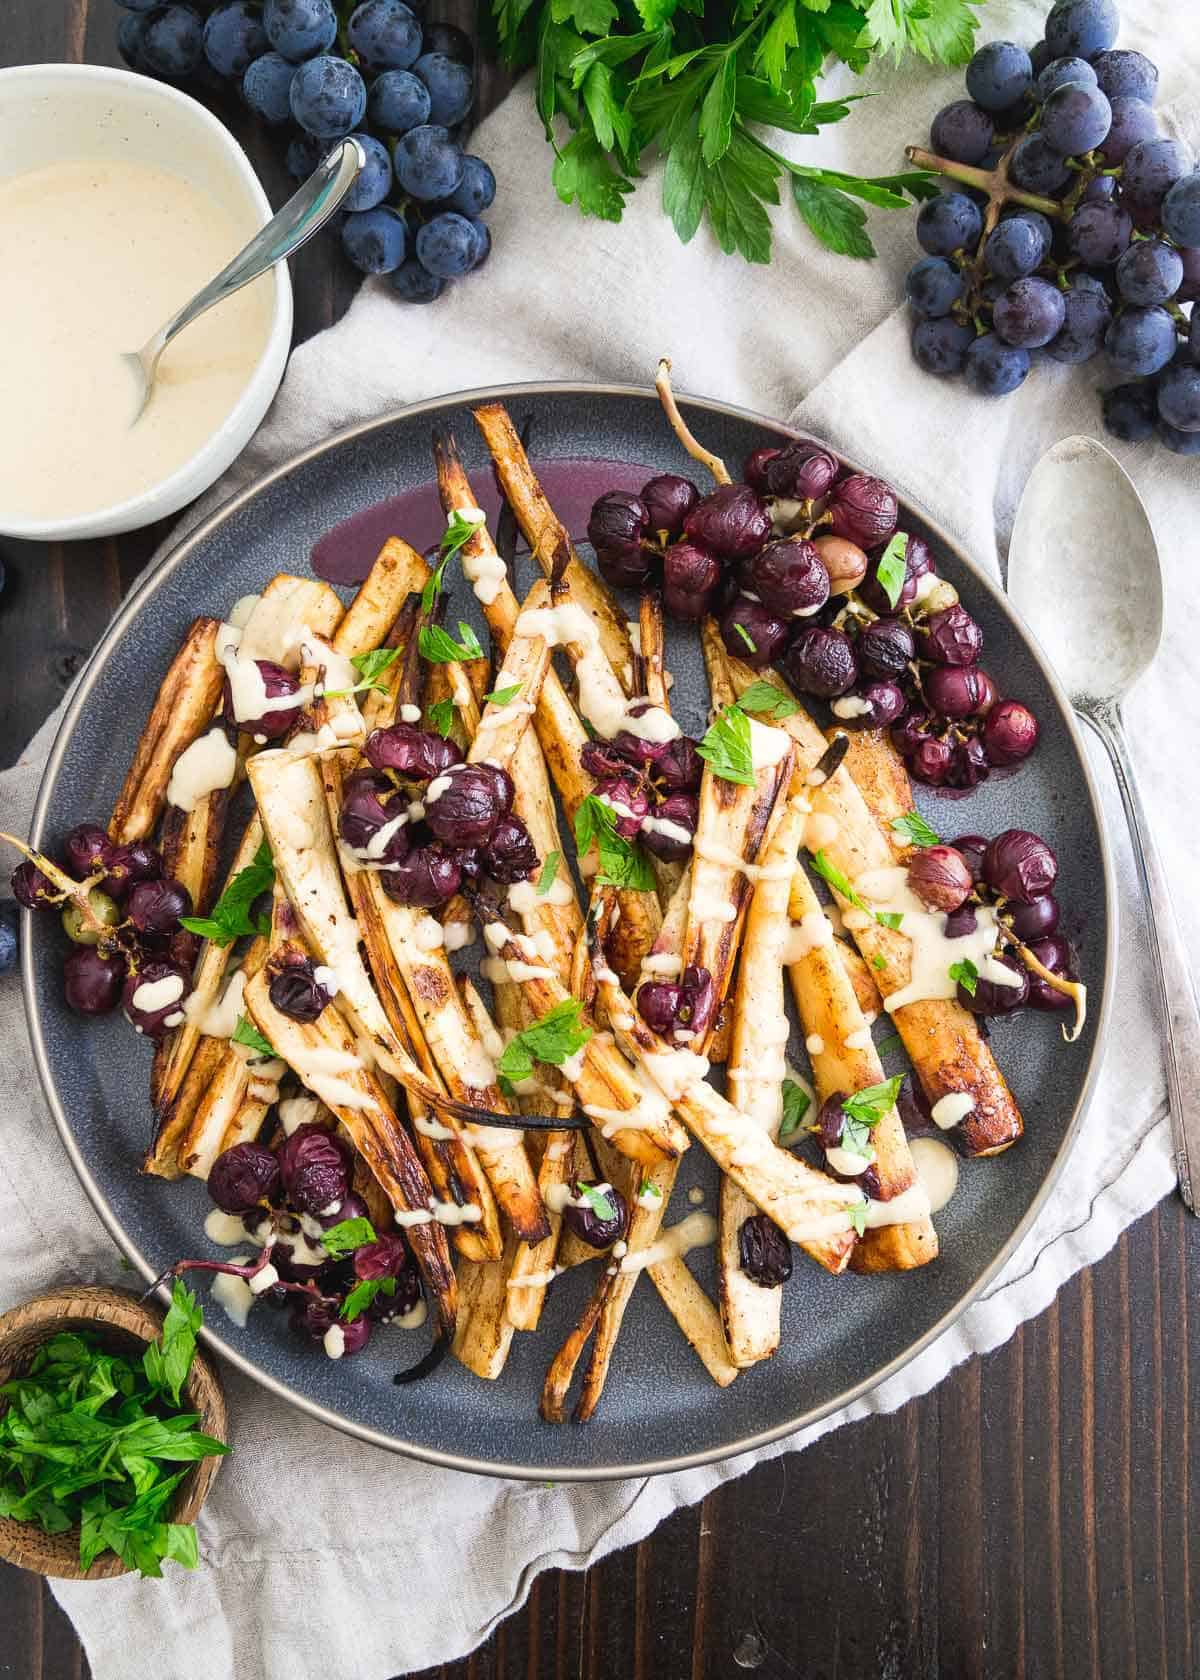 These roasted parsnips with cinnamon and brown sugar are the perfect holiday side dish. Roasted grapes and a sweet hummus drizzle make it a dish to remember!